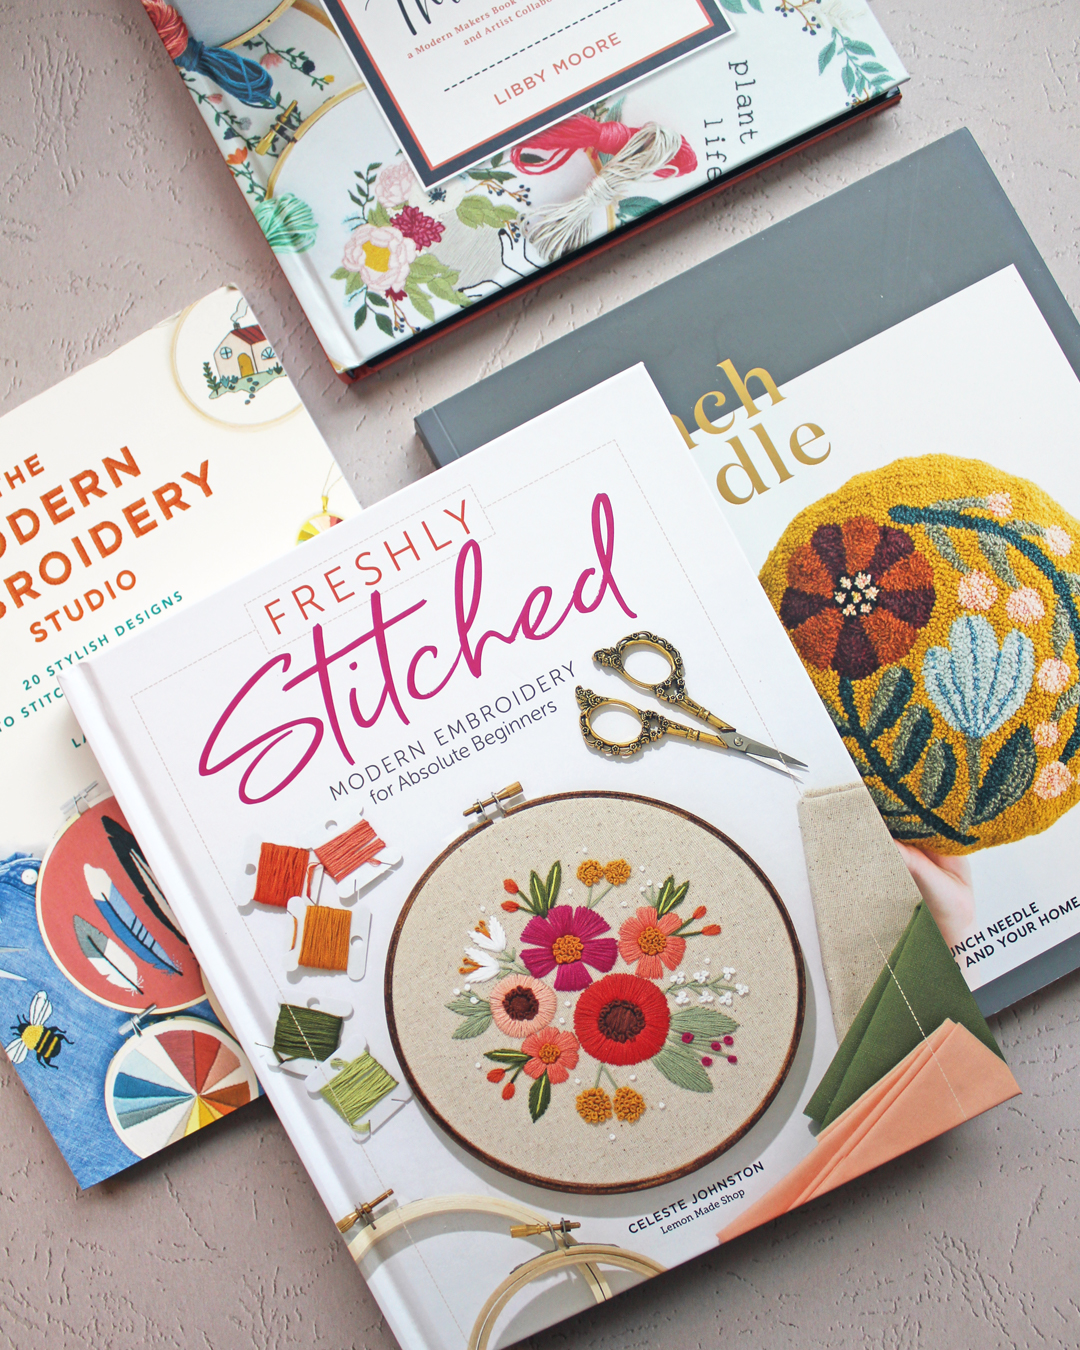 Embroidery How-To Books